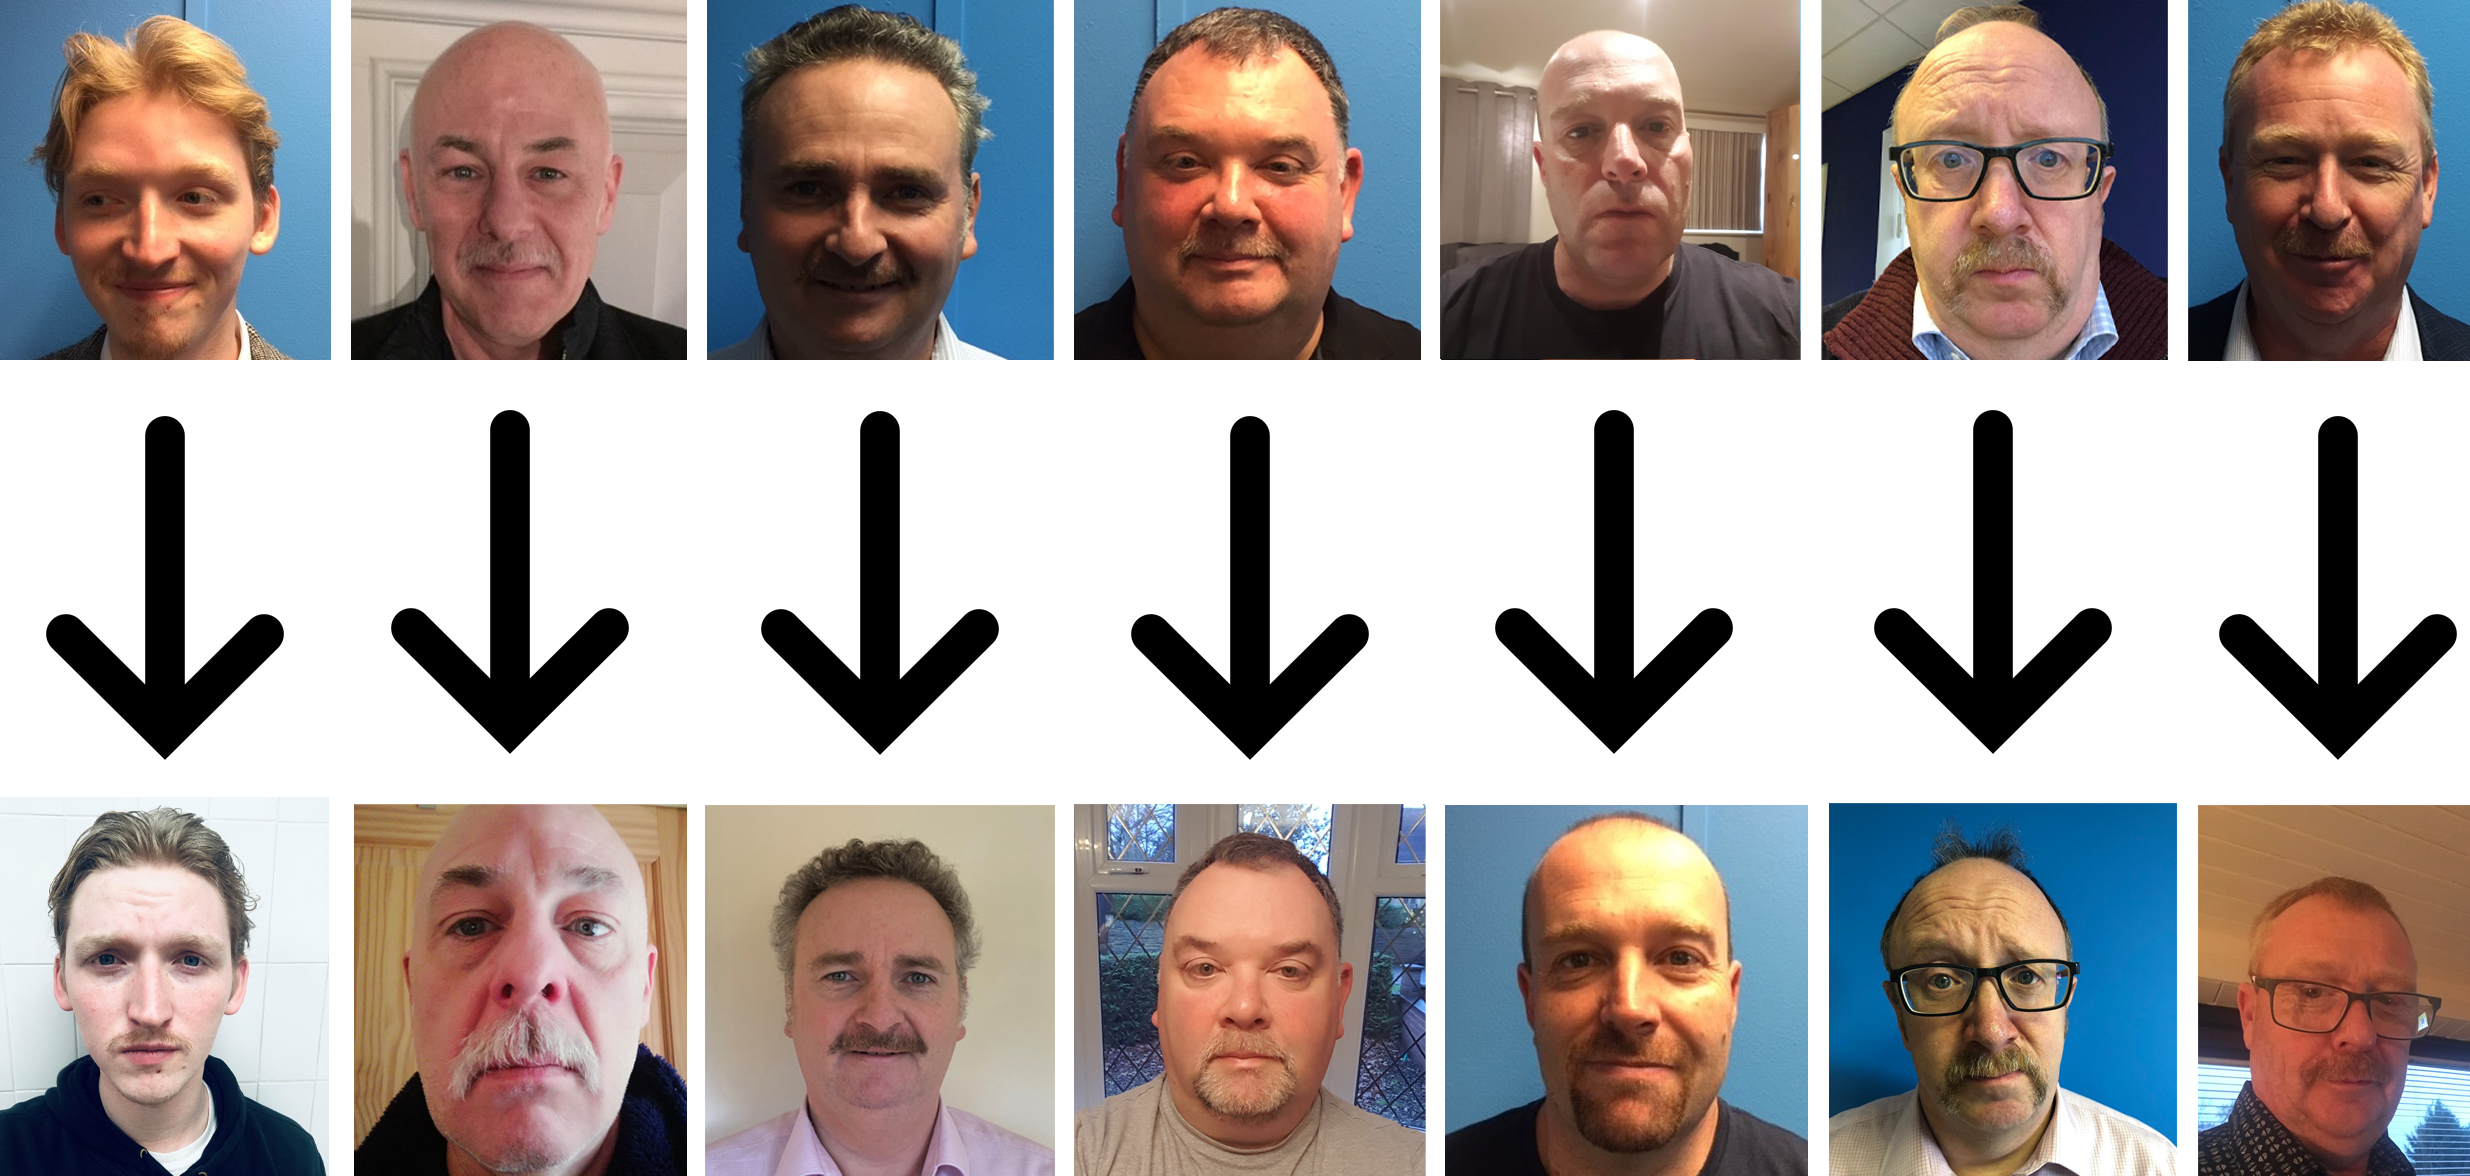 Movember final update pic